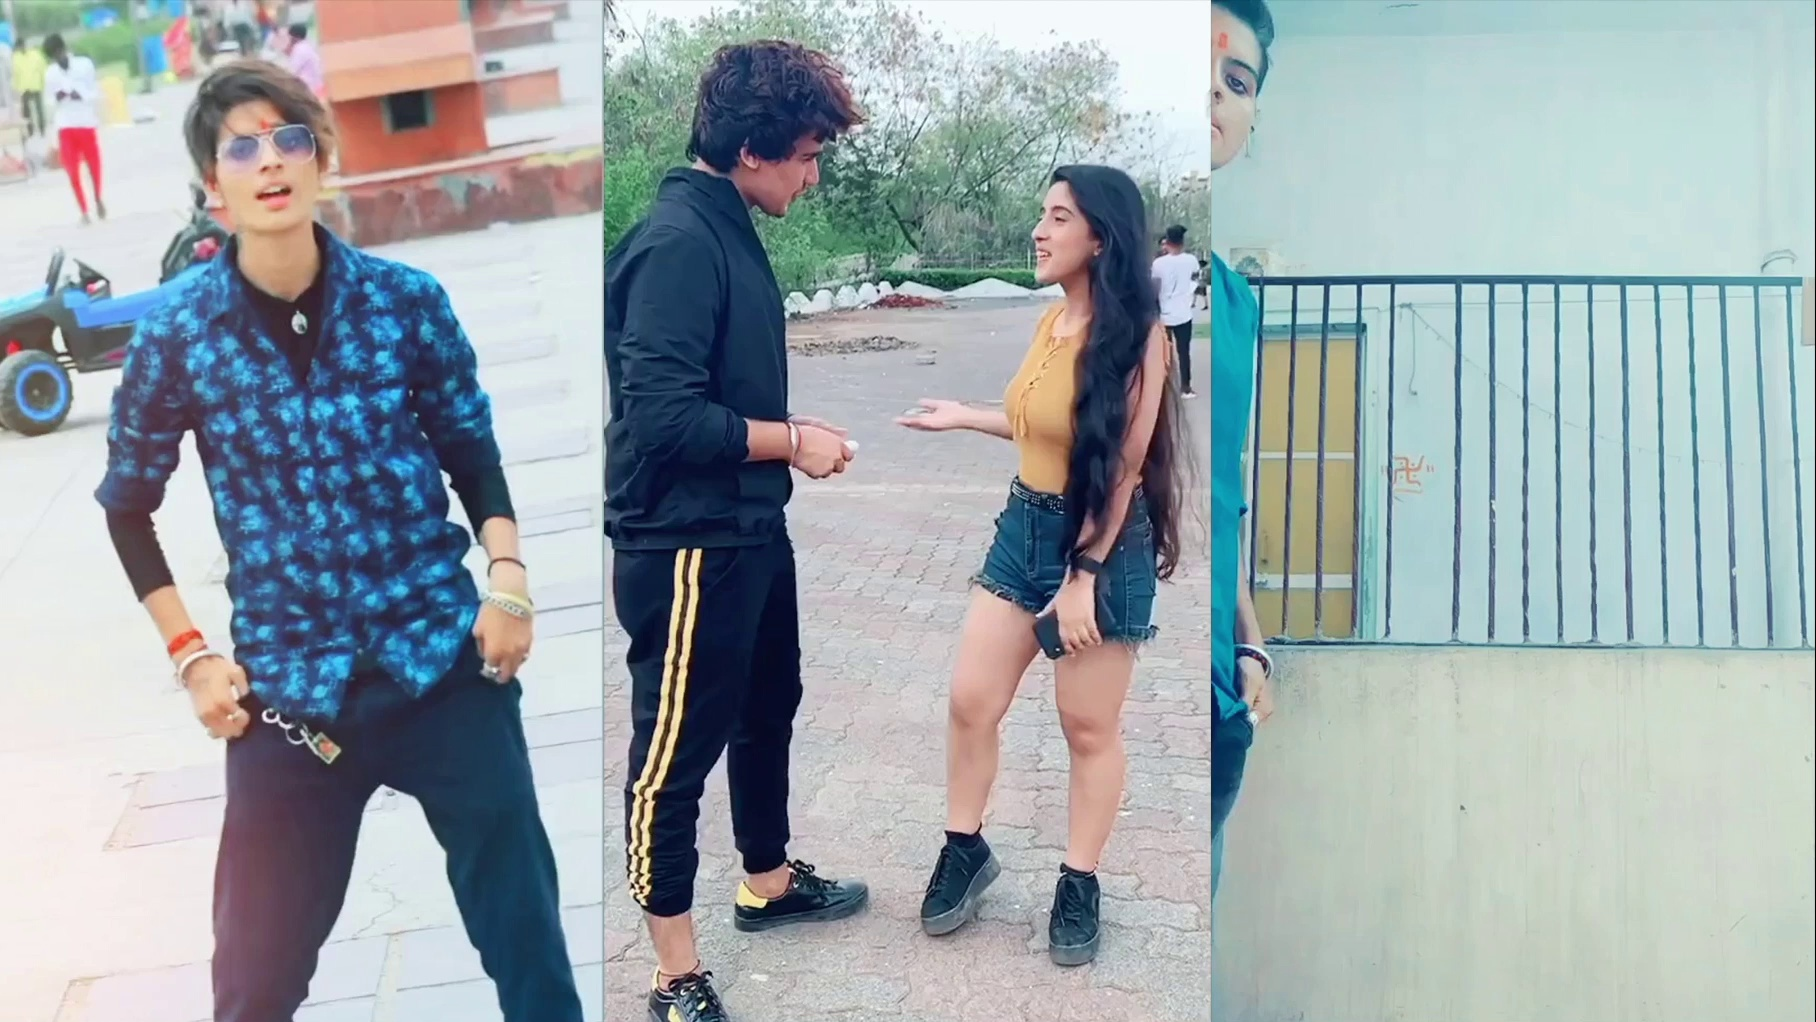 In India Tiktok Stars Are Outshining Traditional Celebrities The Atlantic